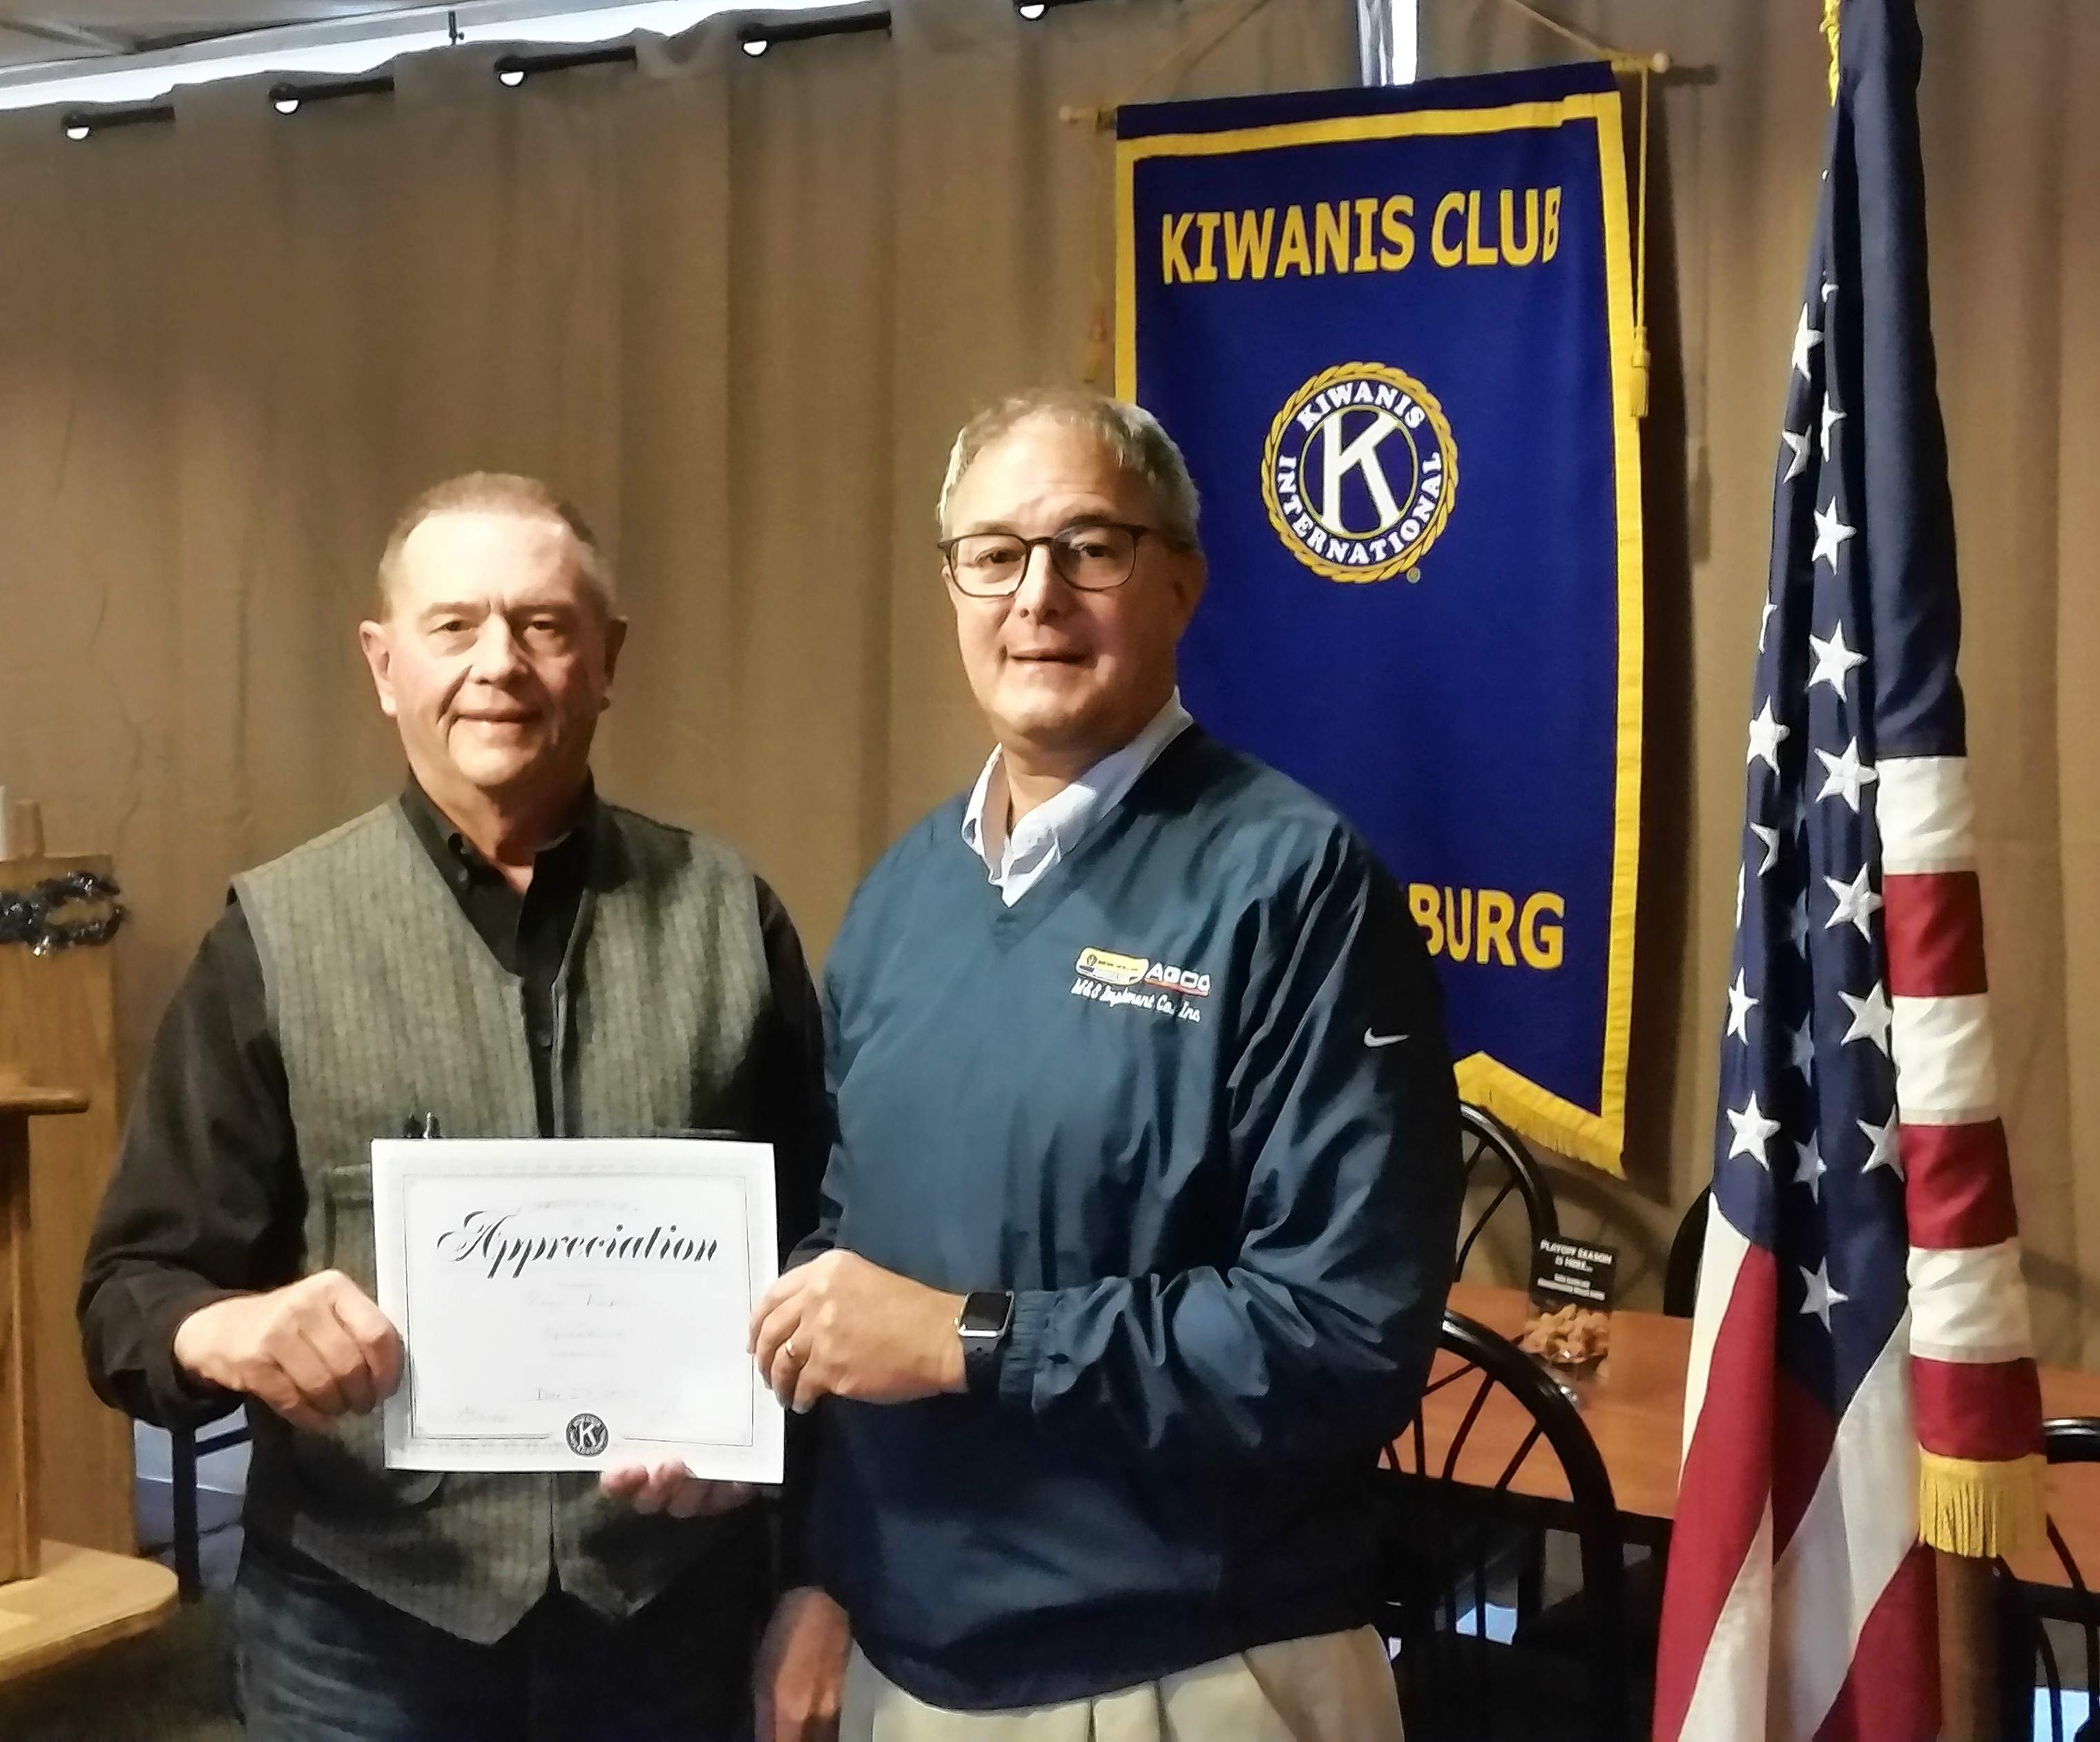 Roger Apple (right) accepts a certificate of appreciation from past Kiwanis Club President Tom Fleege for serving as guest speaker at the Dec. 27 meeting.